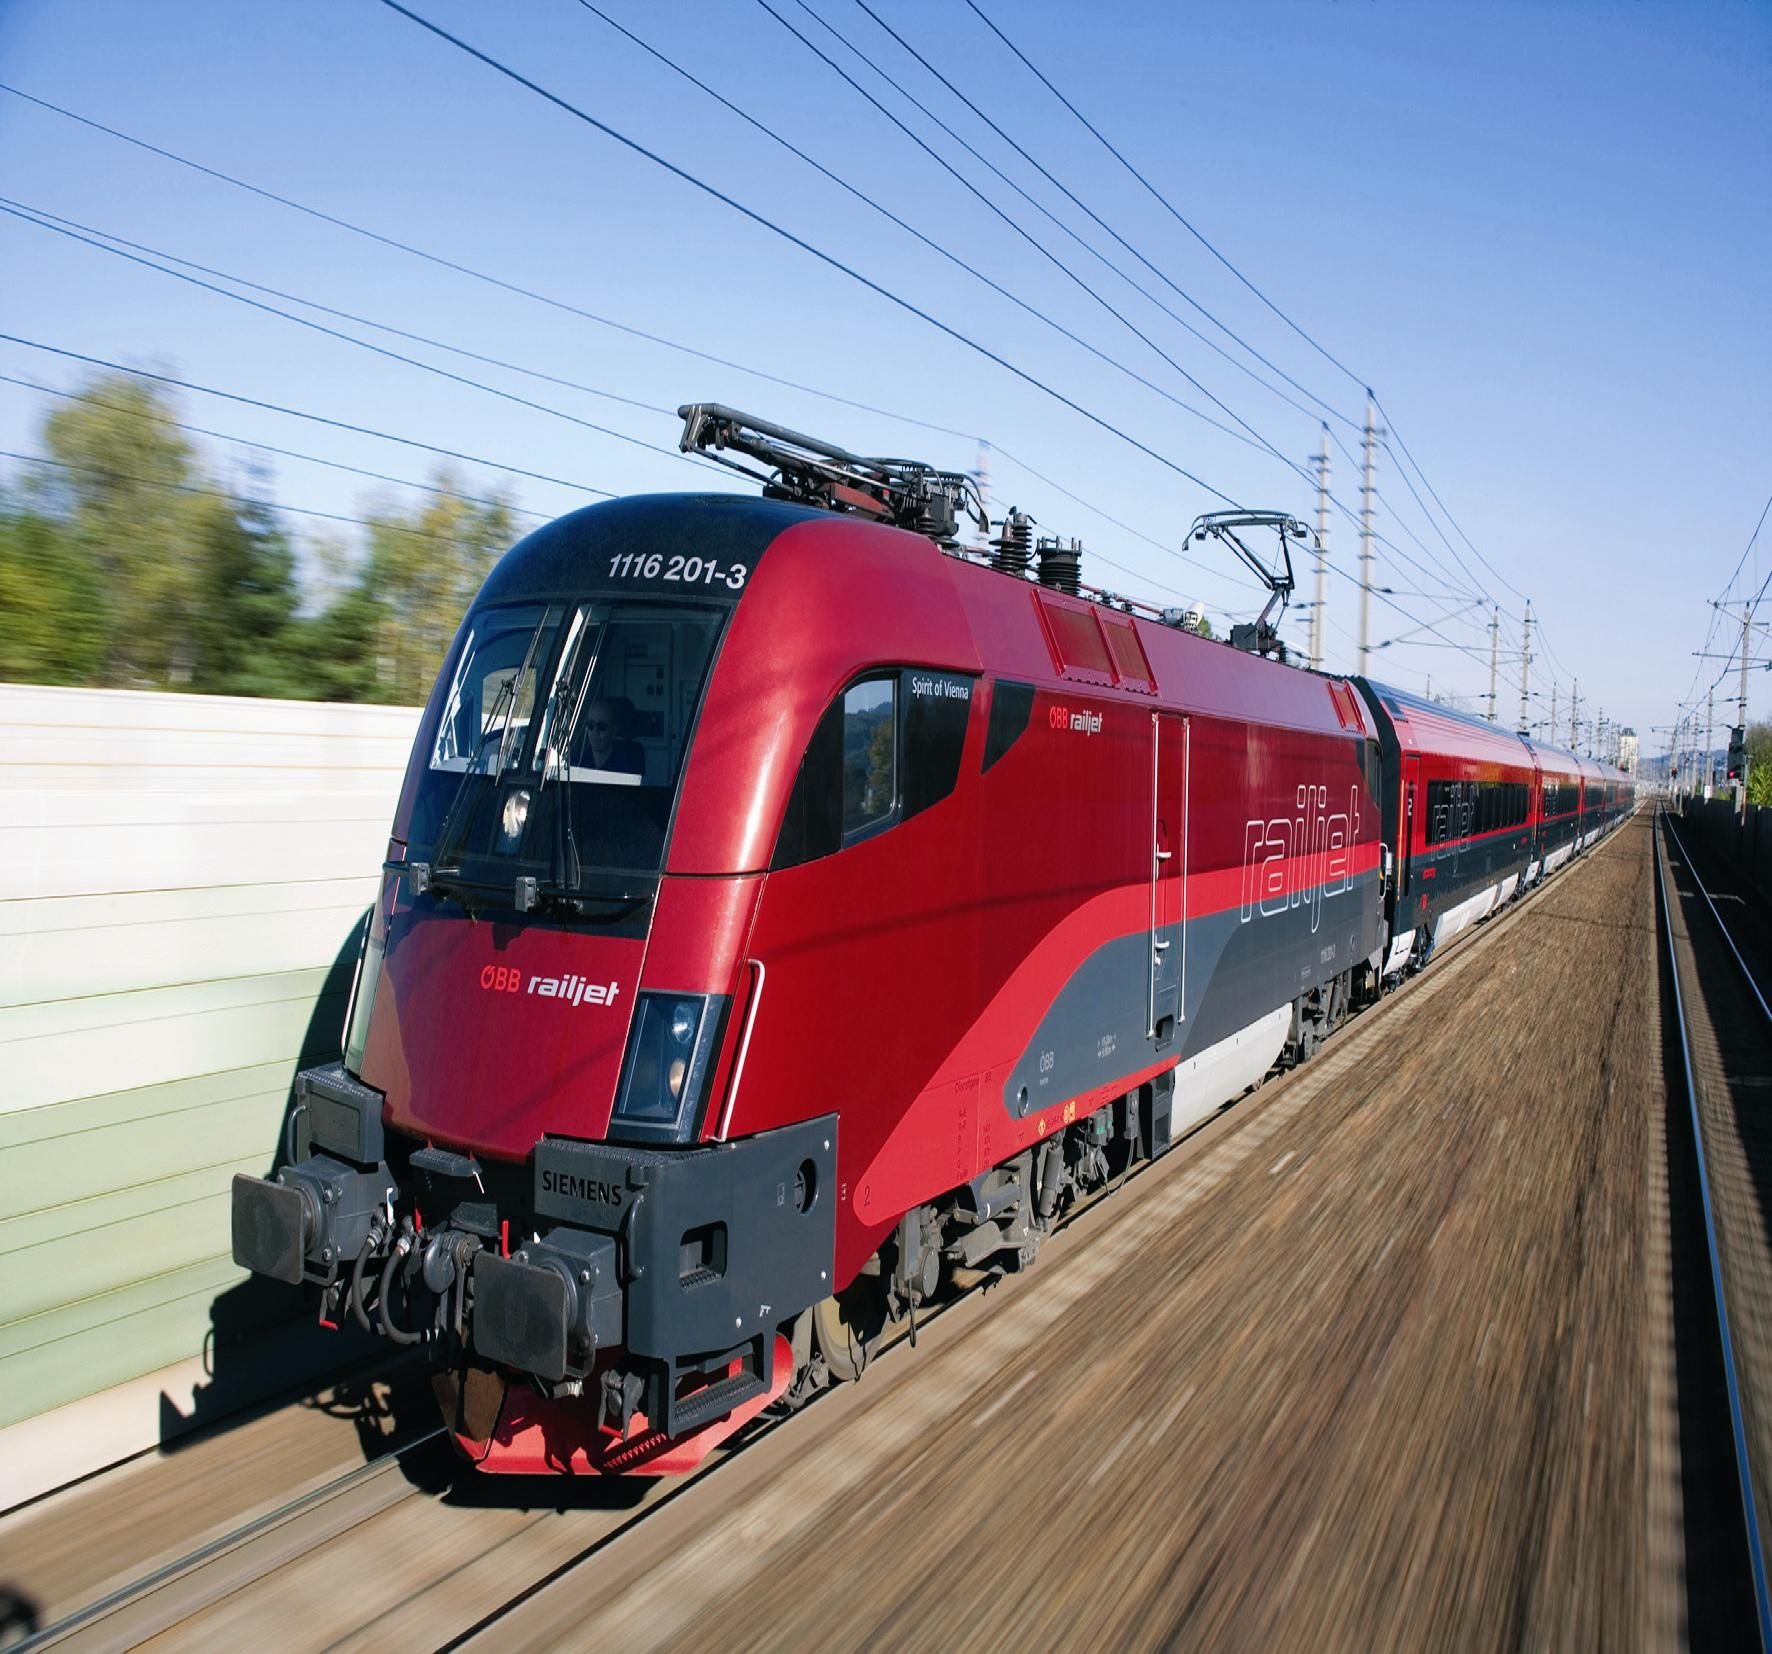 High speed train obb railjet by spirit design consulting for Design consulting services